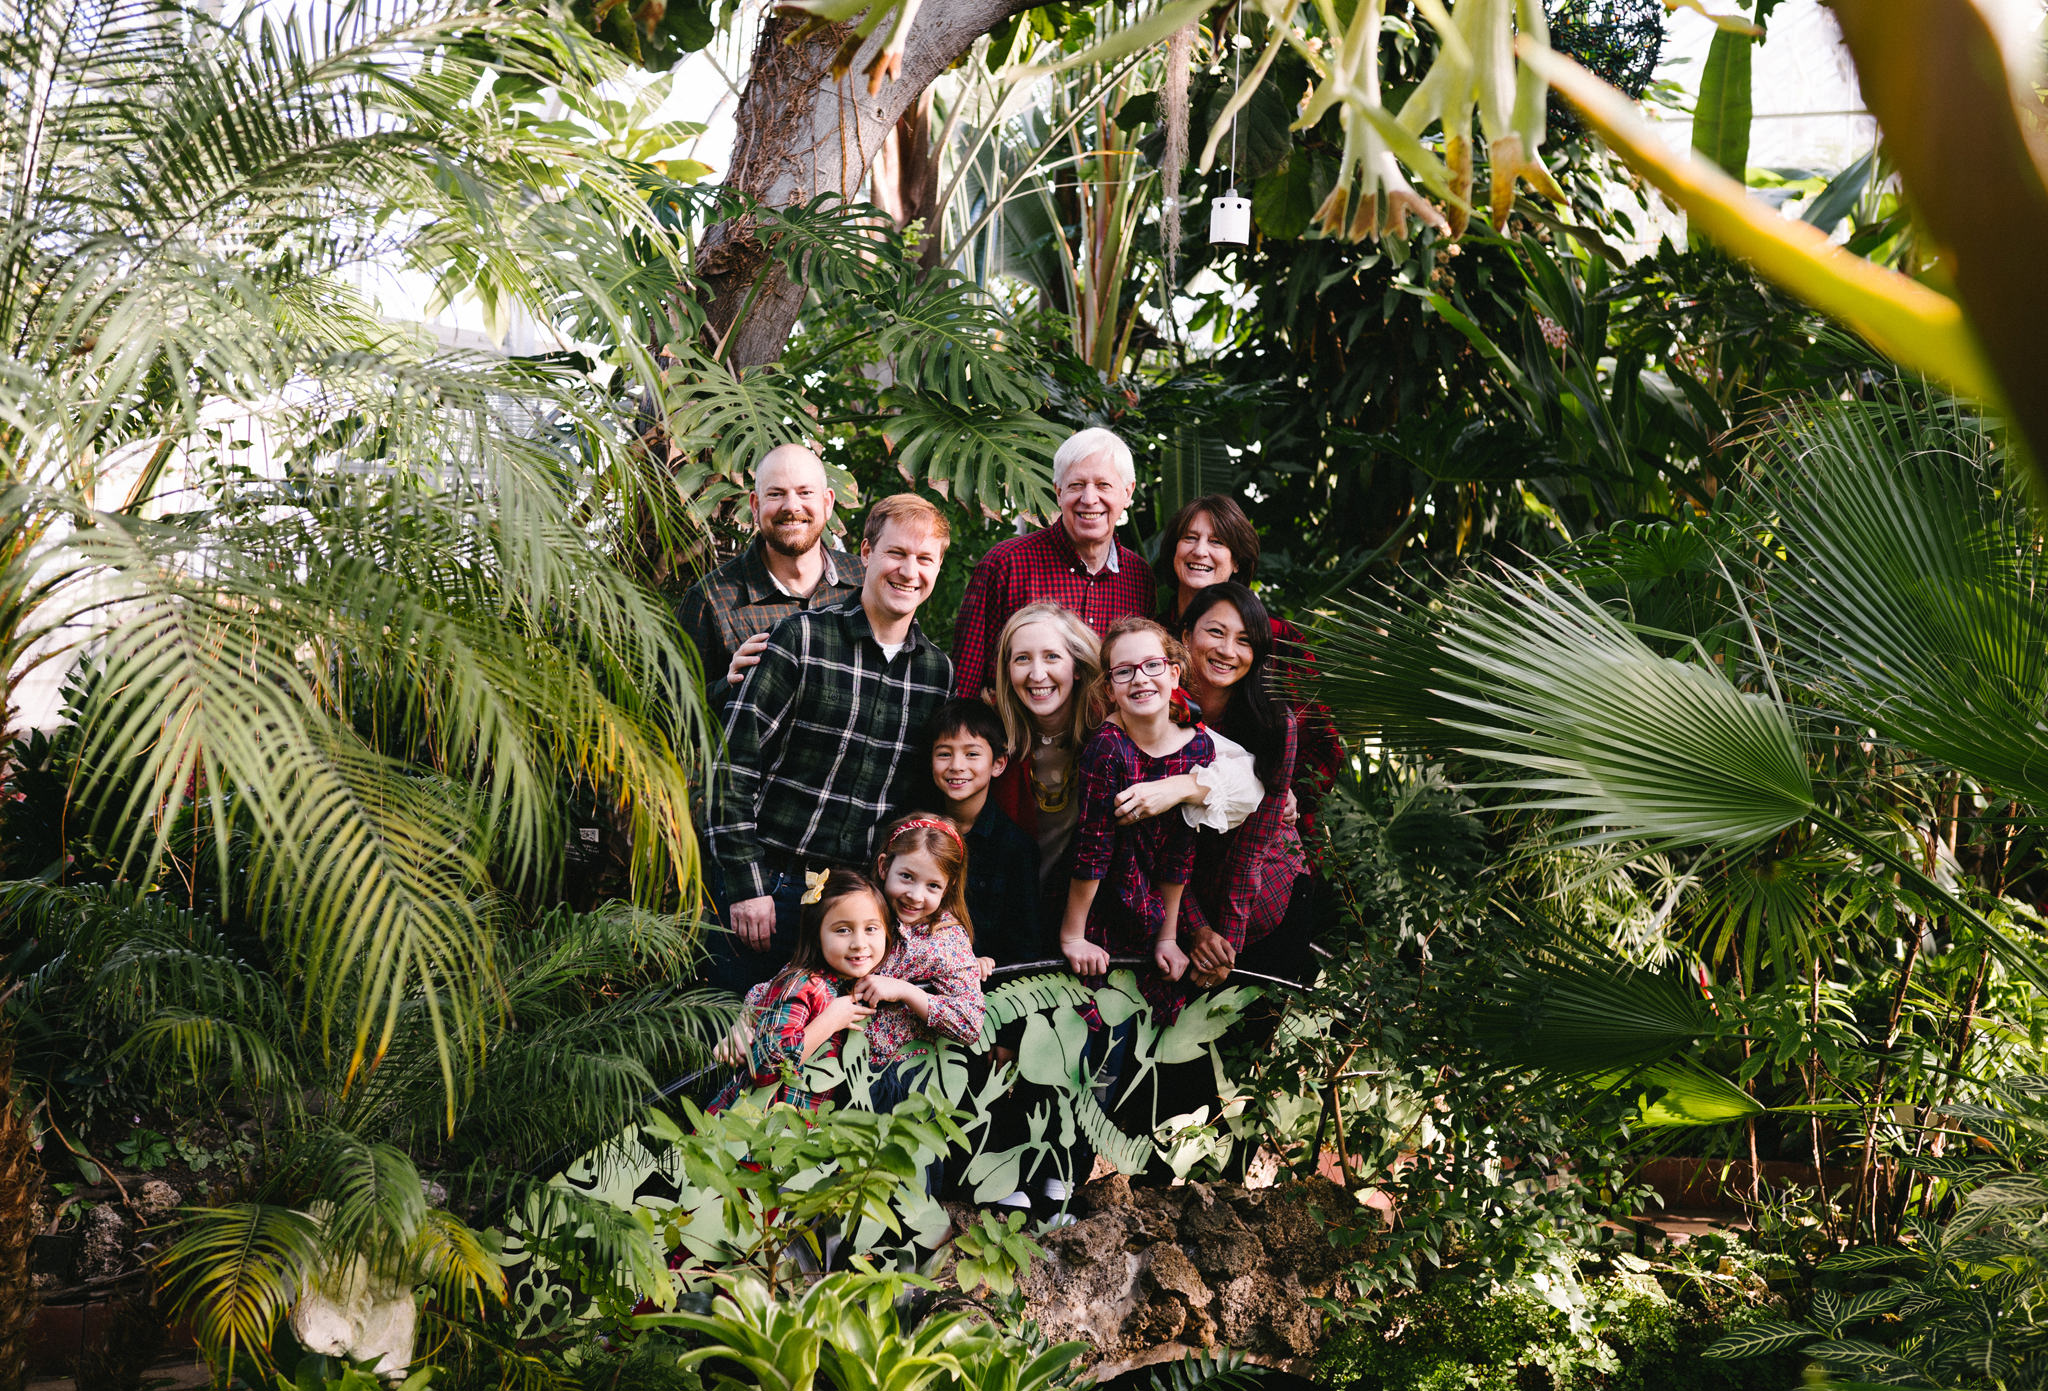 013-rempel-photography-chicago-wedding-inspiration-oak-park-conservatory-family-photo-session-bailey-forest-park-berwin-area-photographers.jpg